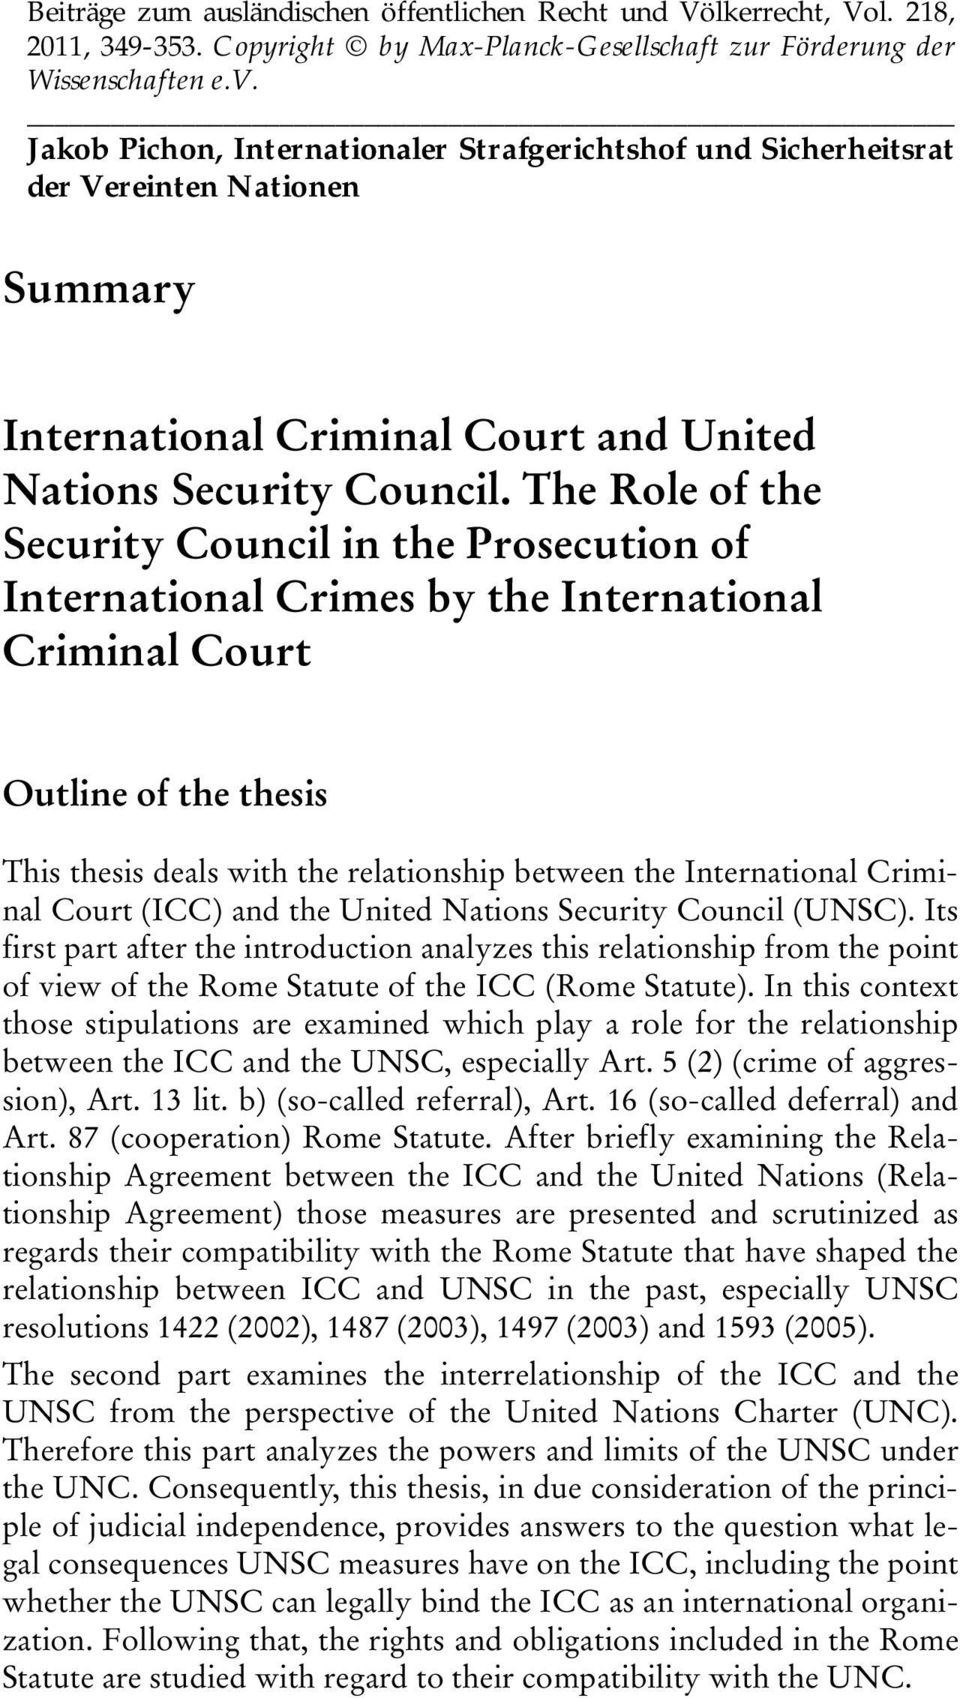 Criminal Court (ICC) and the United Nations Security Council (UNSC).